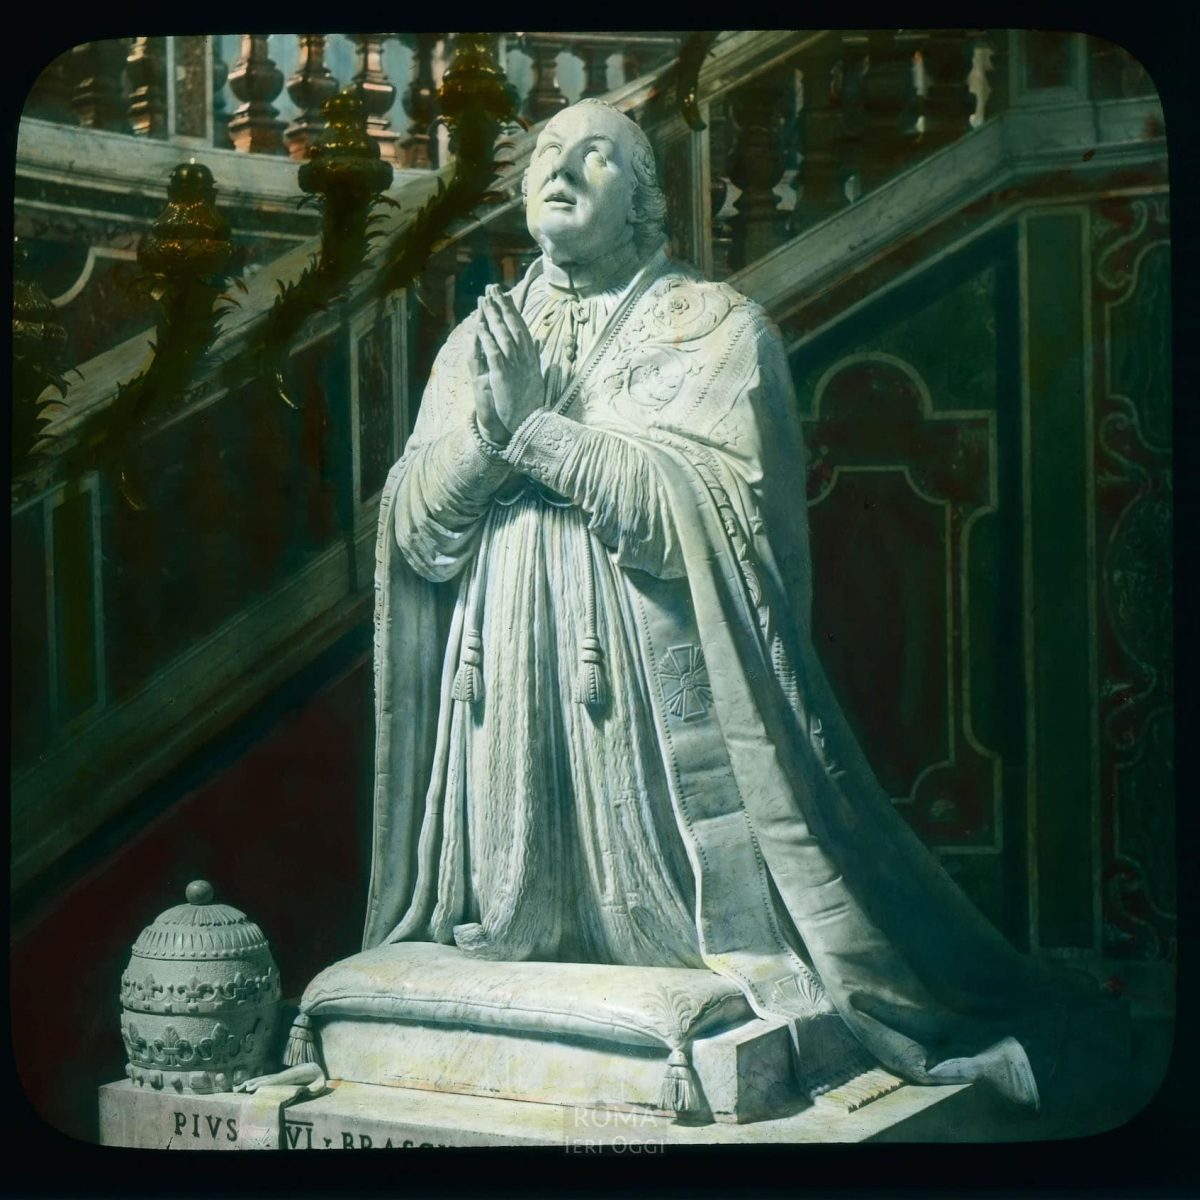 """Vatican City. Vatican Grottoes: Canova's """"Tomb of Pope Pius VI (Monument to Pius VI)"""", detail, figure of pope View in tinted lantern slide, ca. 1919-1938. The marble monument dates from 1817-1822."""